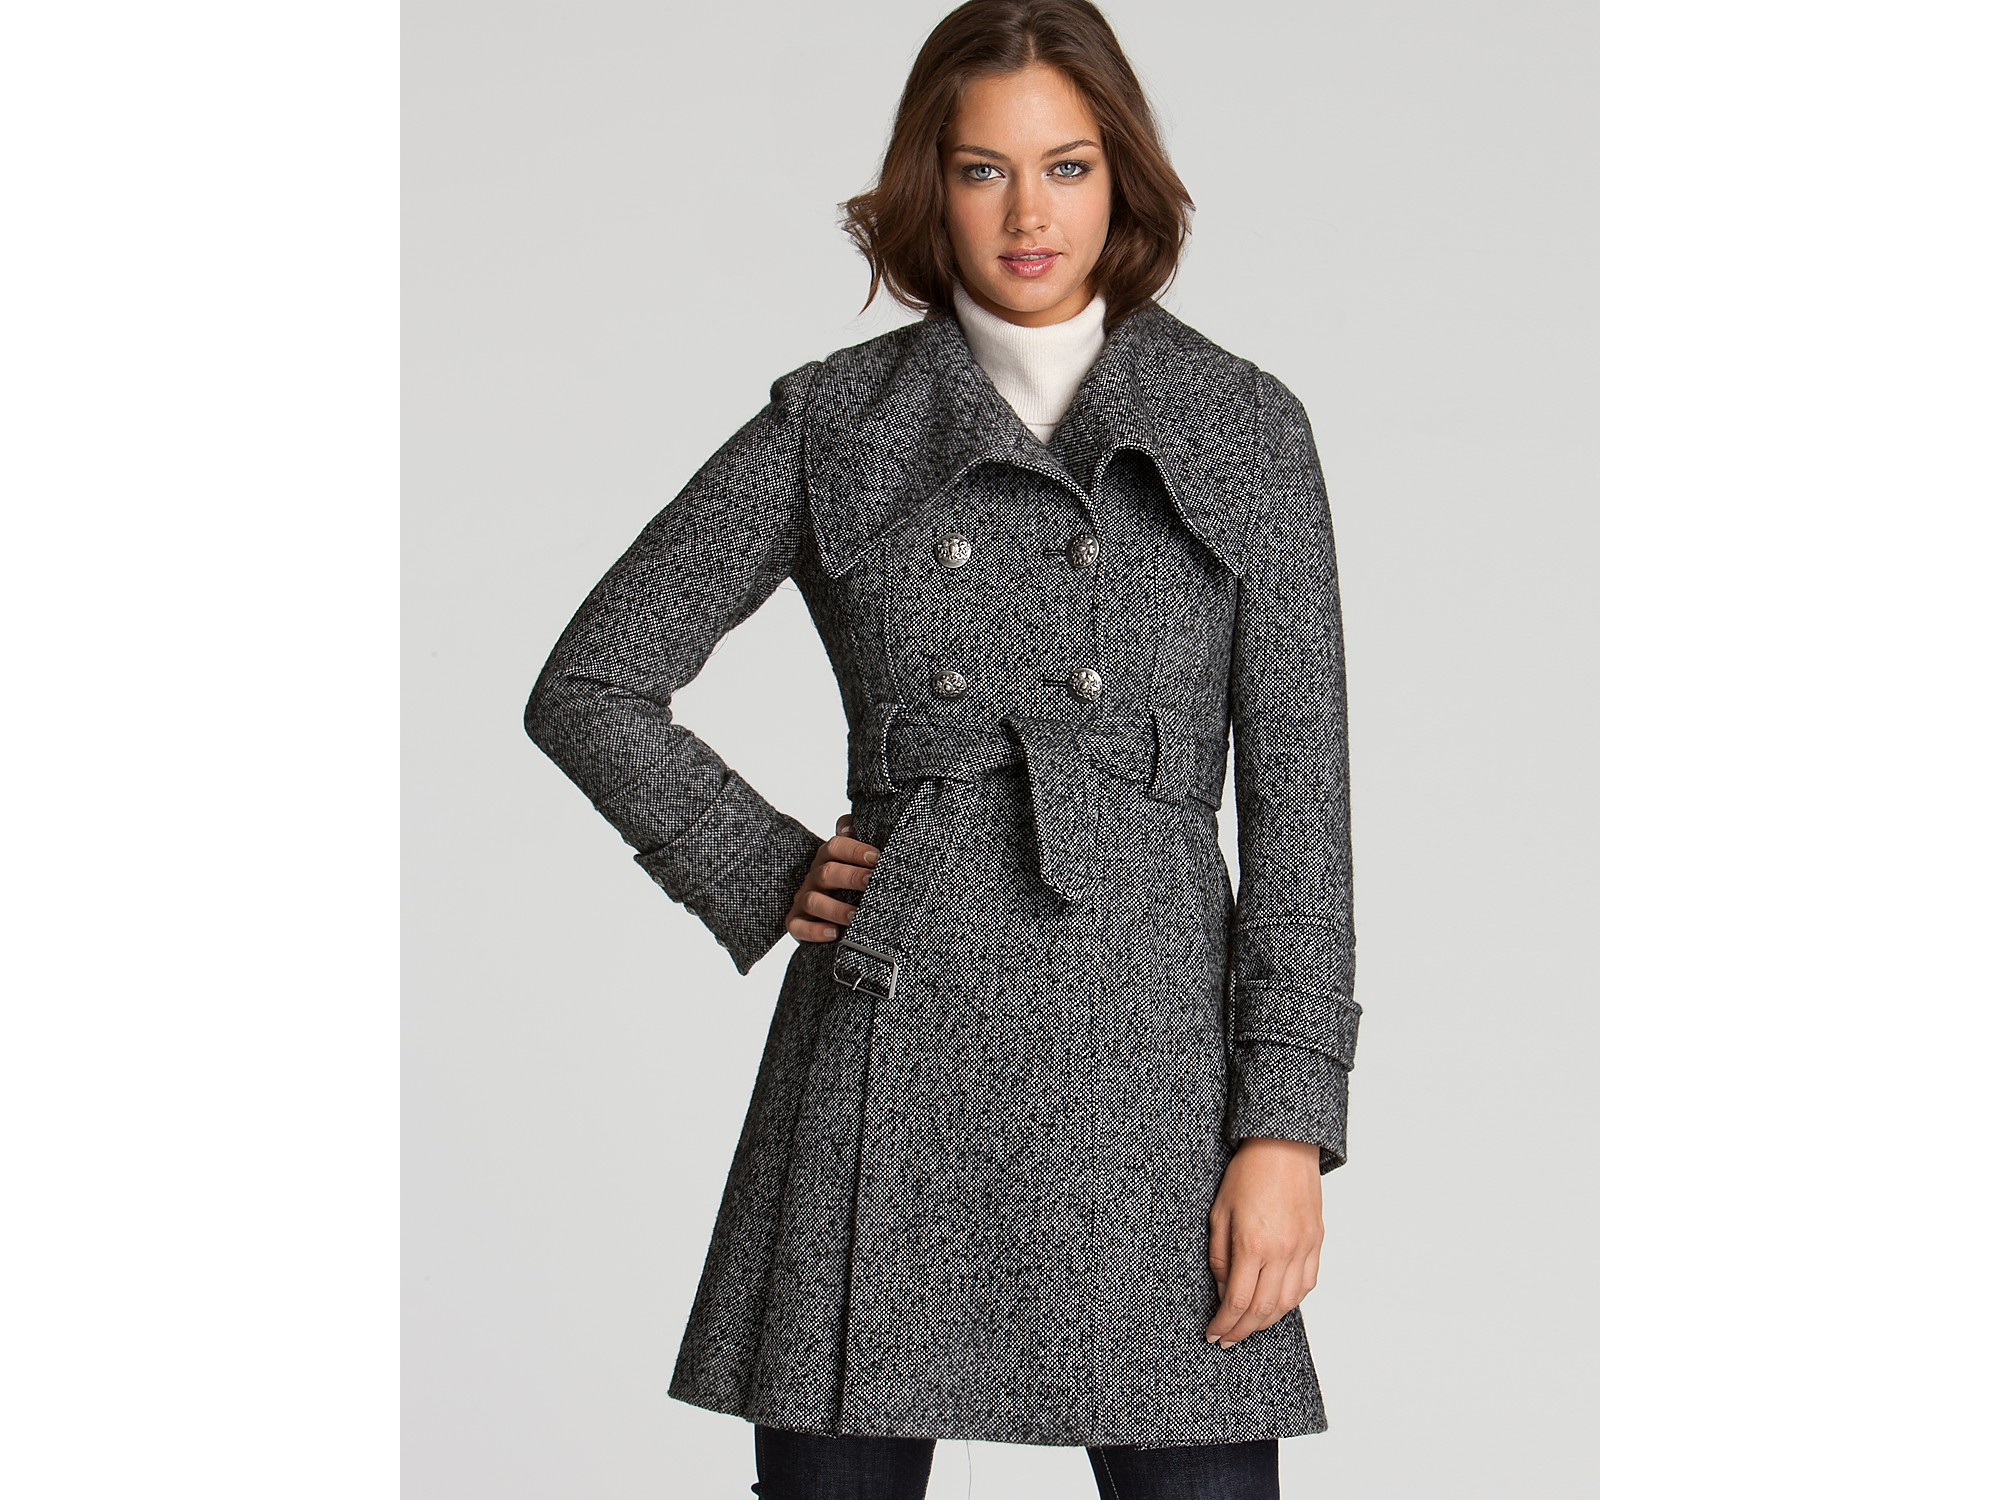 Guess Double Breasted Military Coat In Gray Black White